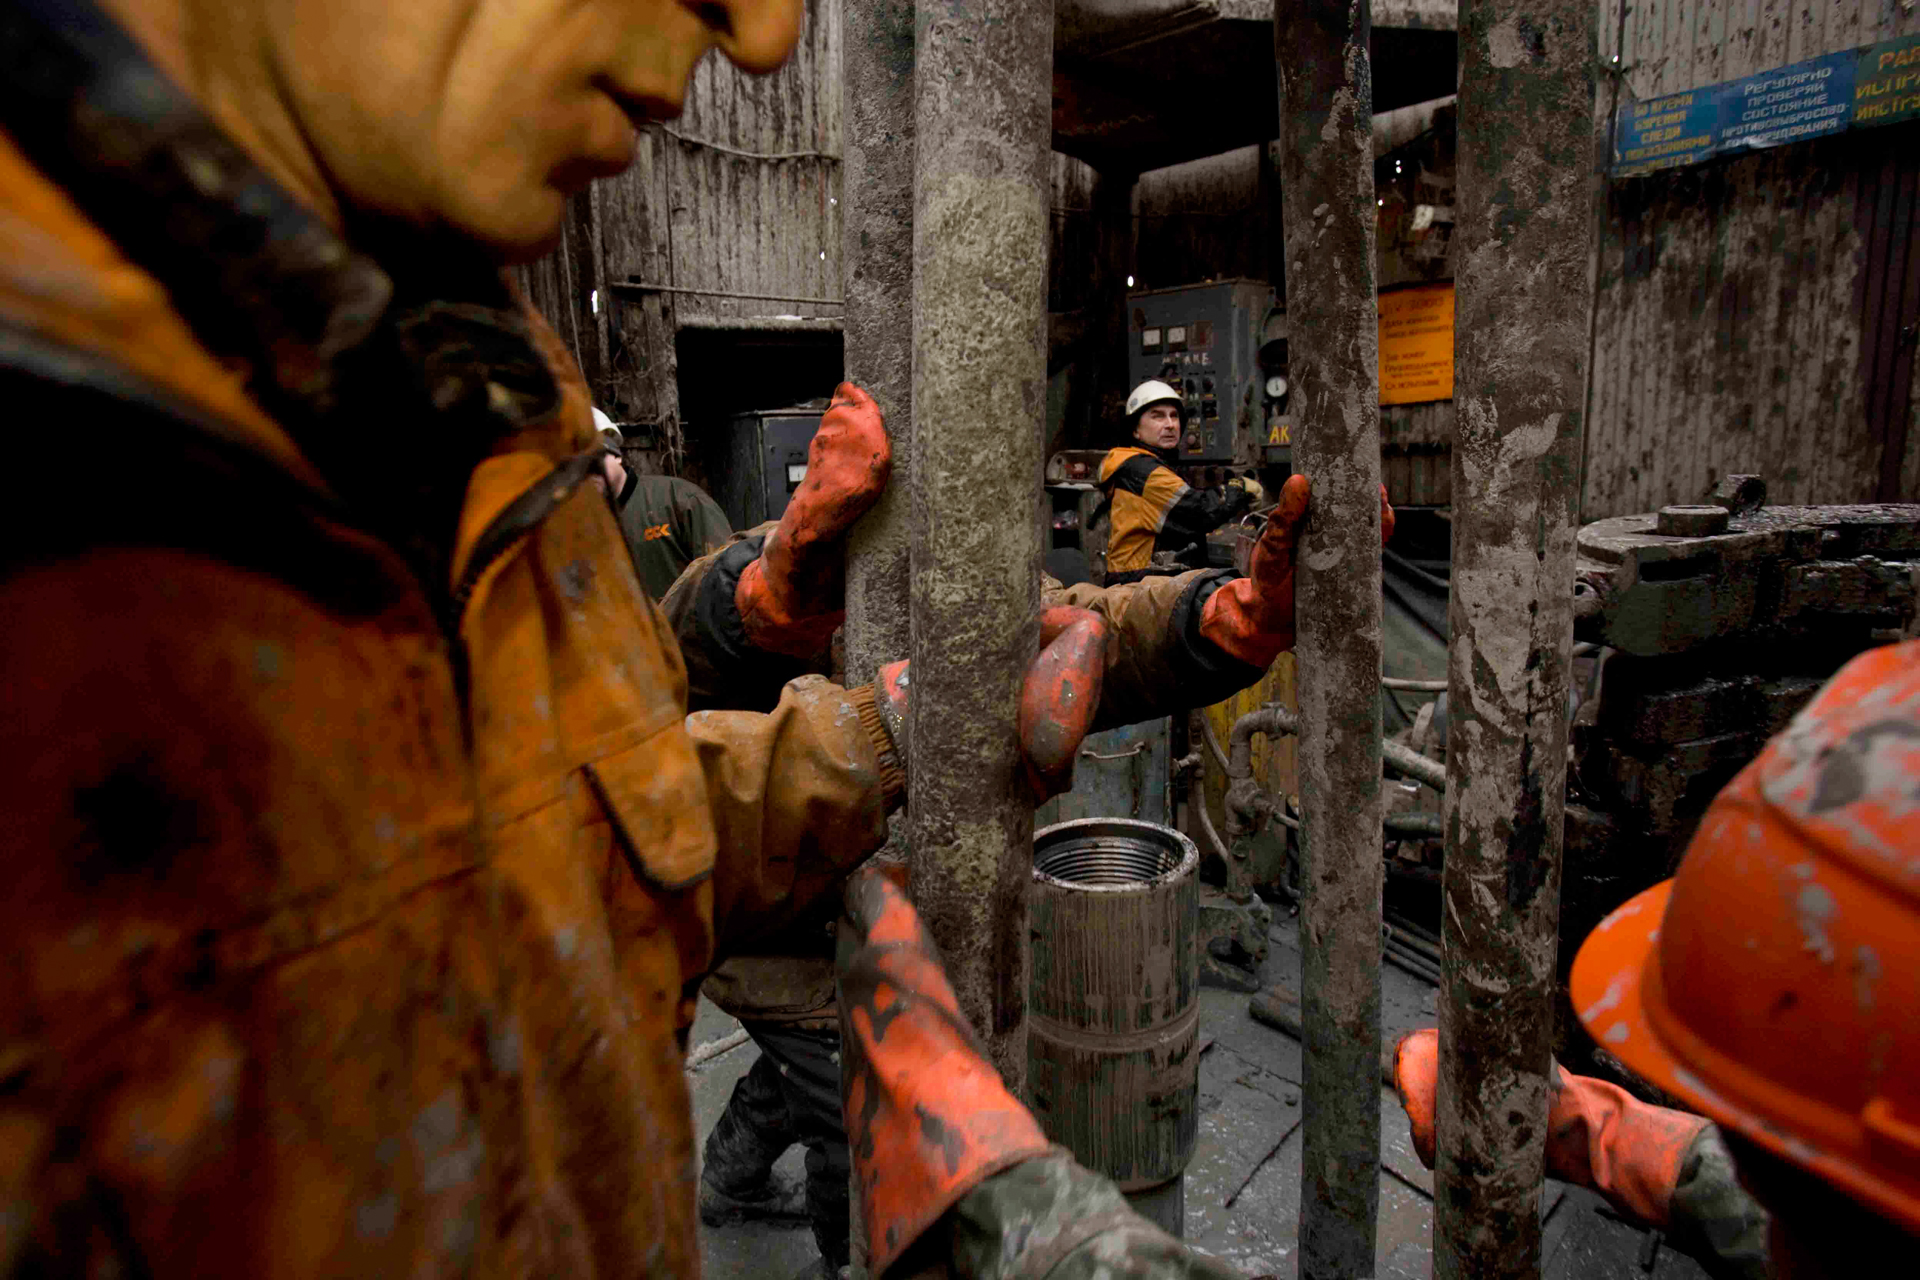 Mud-spattered and cold, oil workers change a drilling pipe. The enormous growth of Russia's oil industry has been fueled by surging world oil prices.  Yuzhno-Priobskoye, Russia